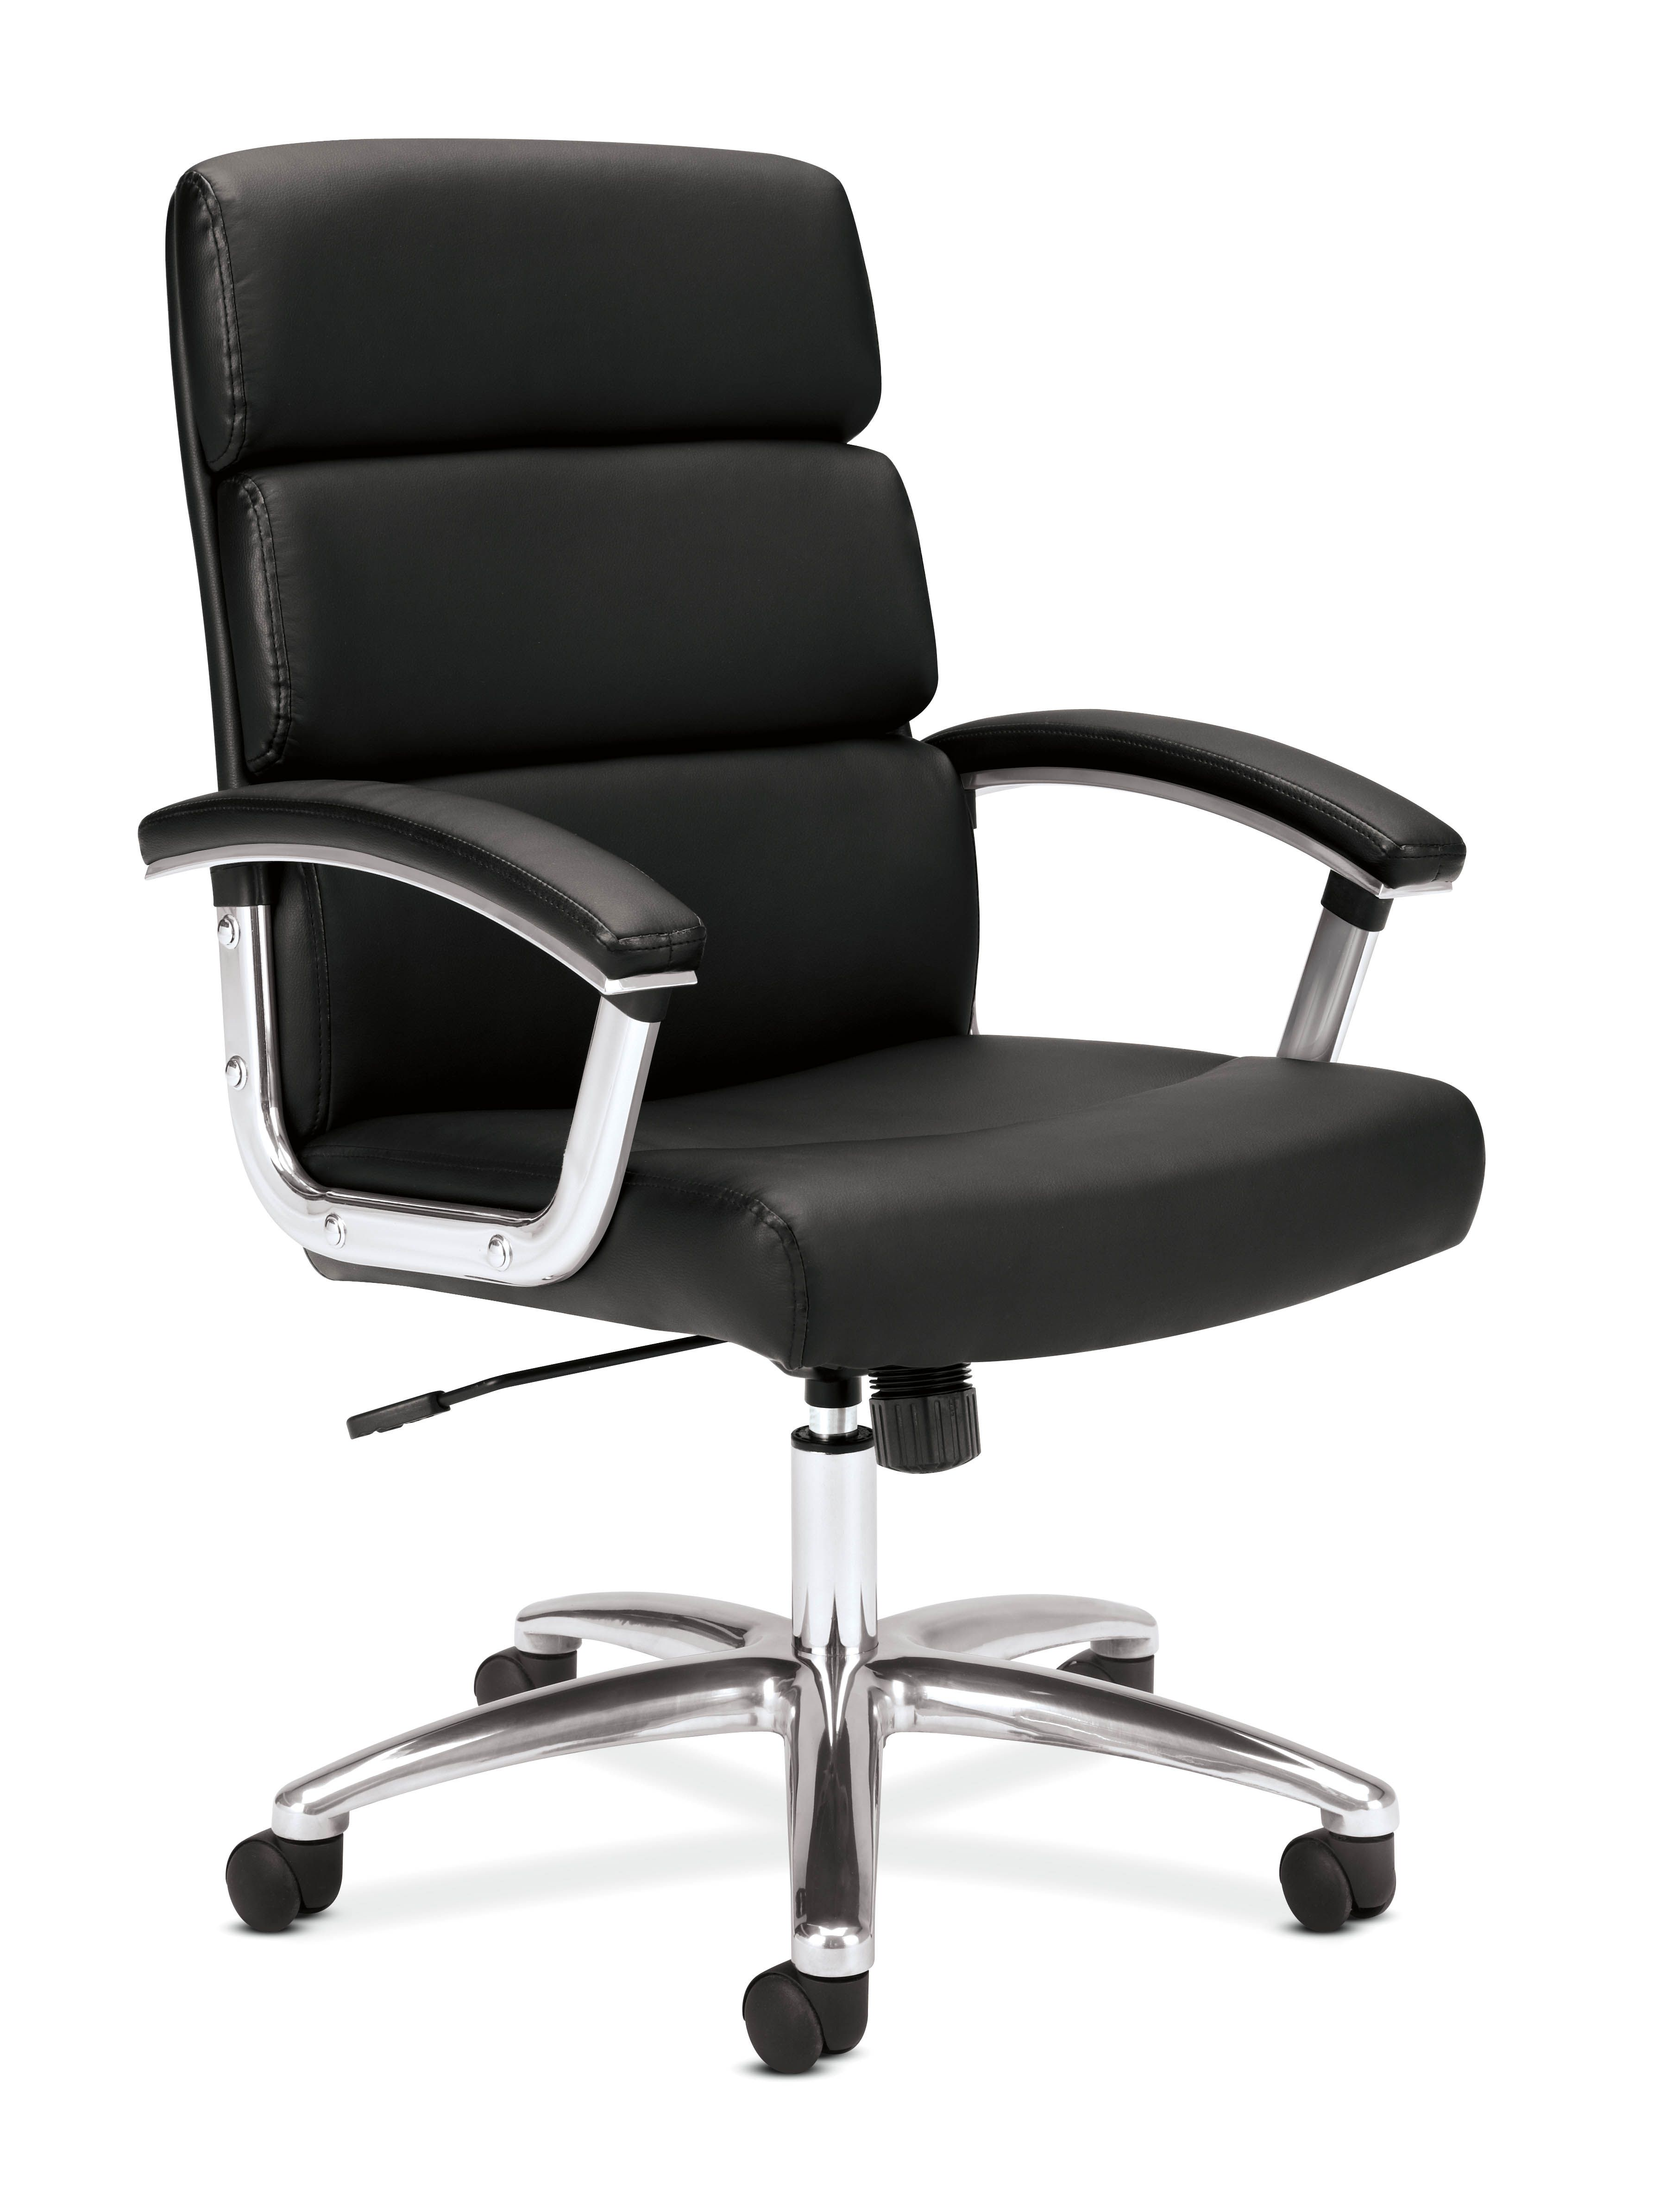 Realspace Chairs Basyx By Hon Vl103 High Back Chair Item Bsxvl103sb11